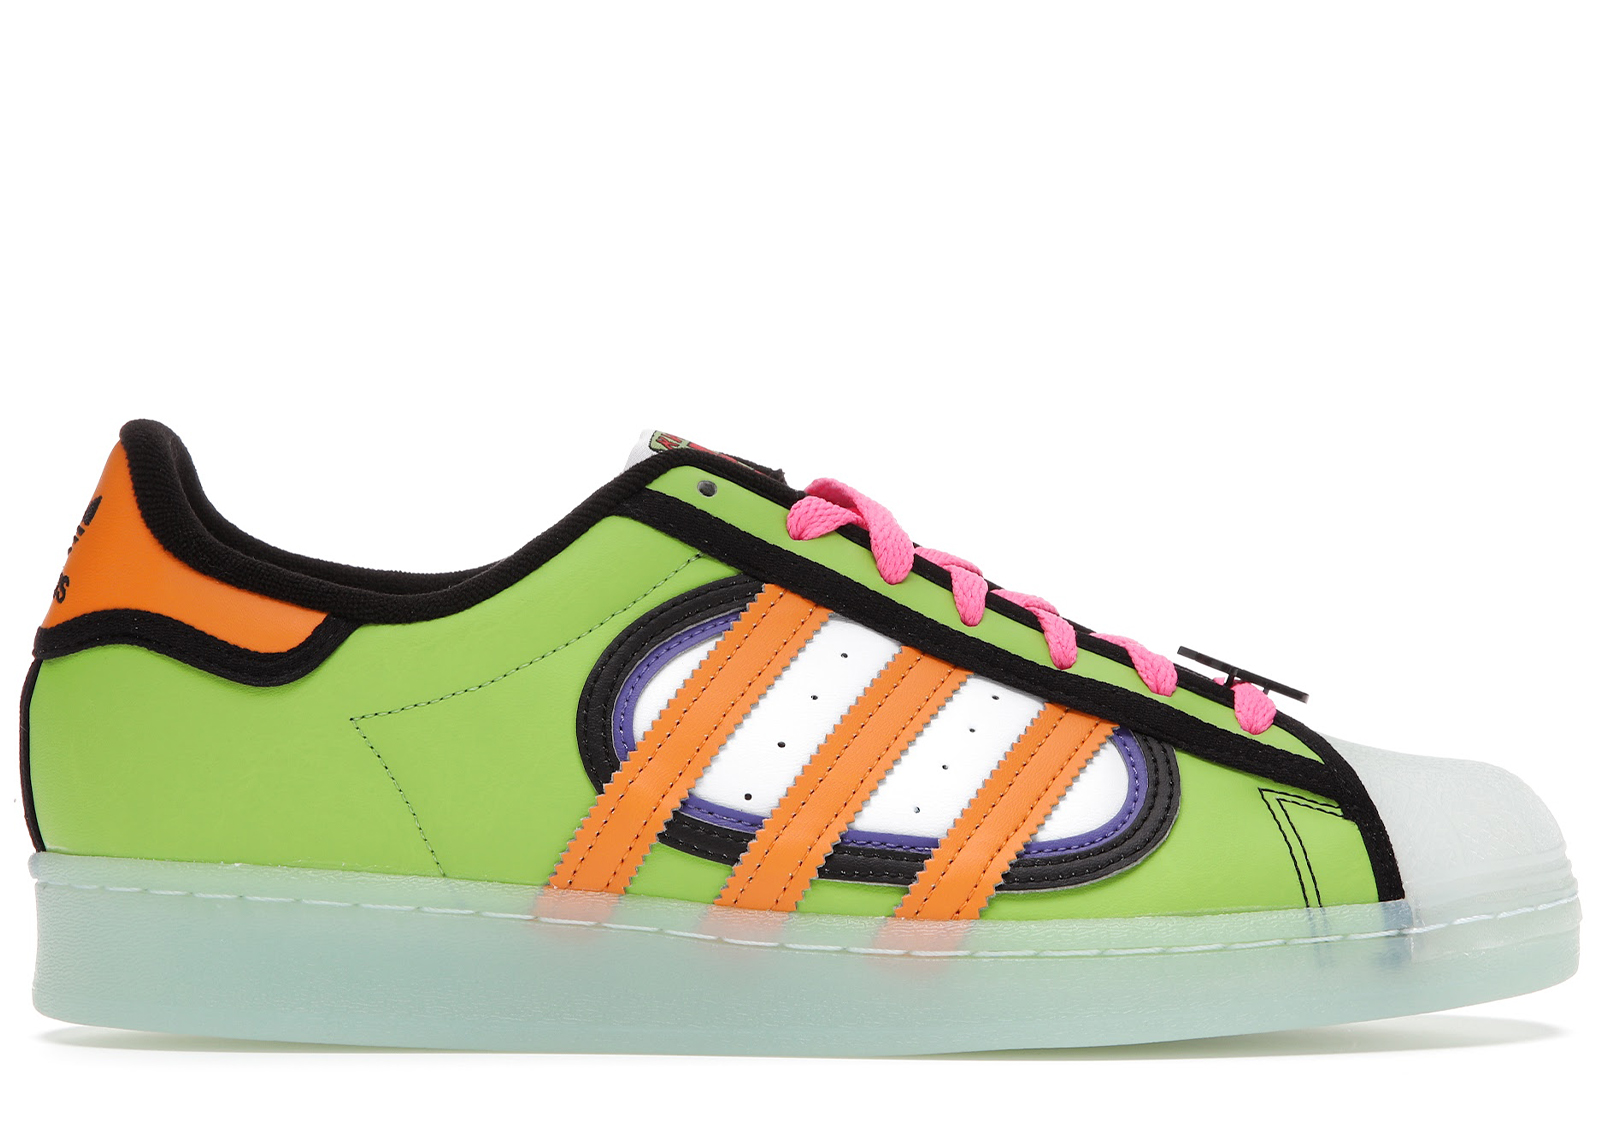 adidas Superstar The Simpsons Squishee - H05789